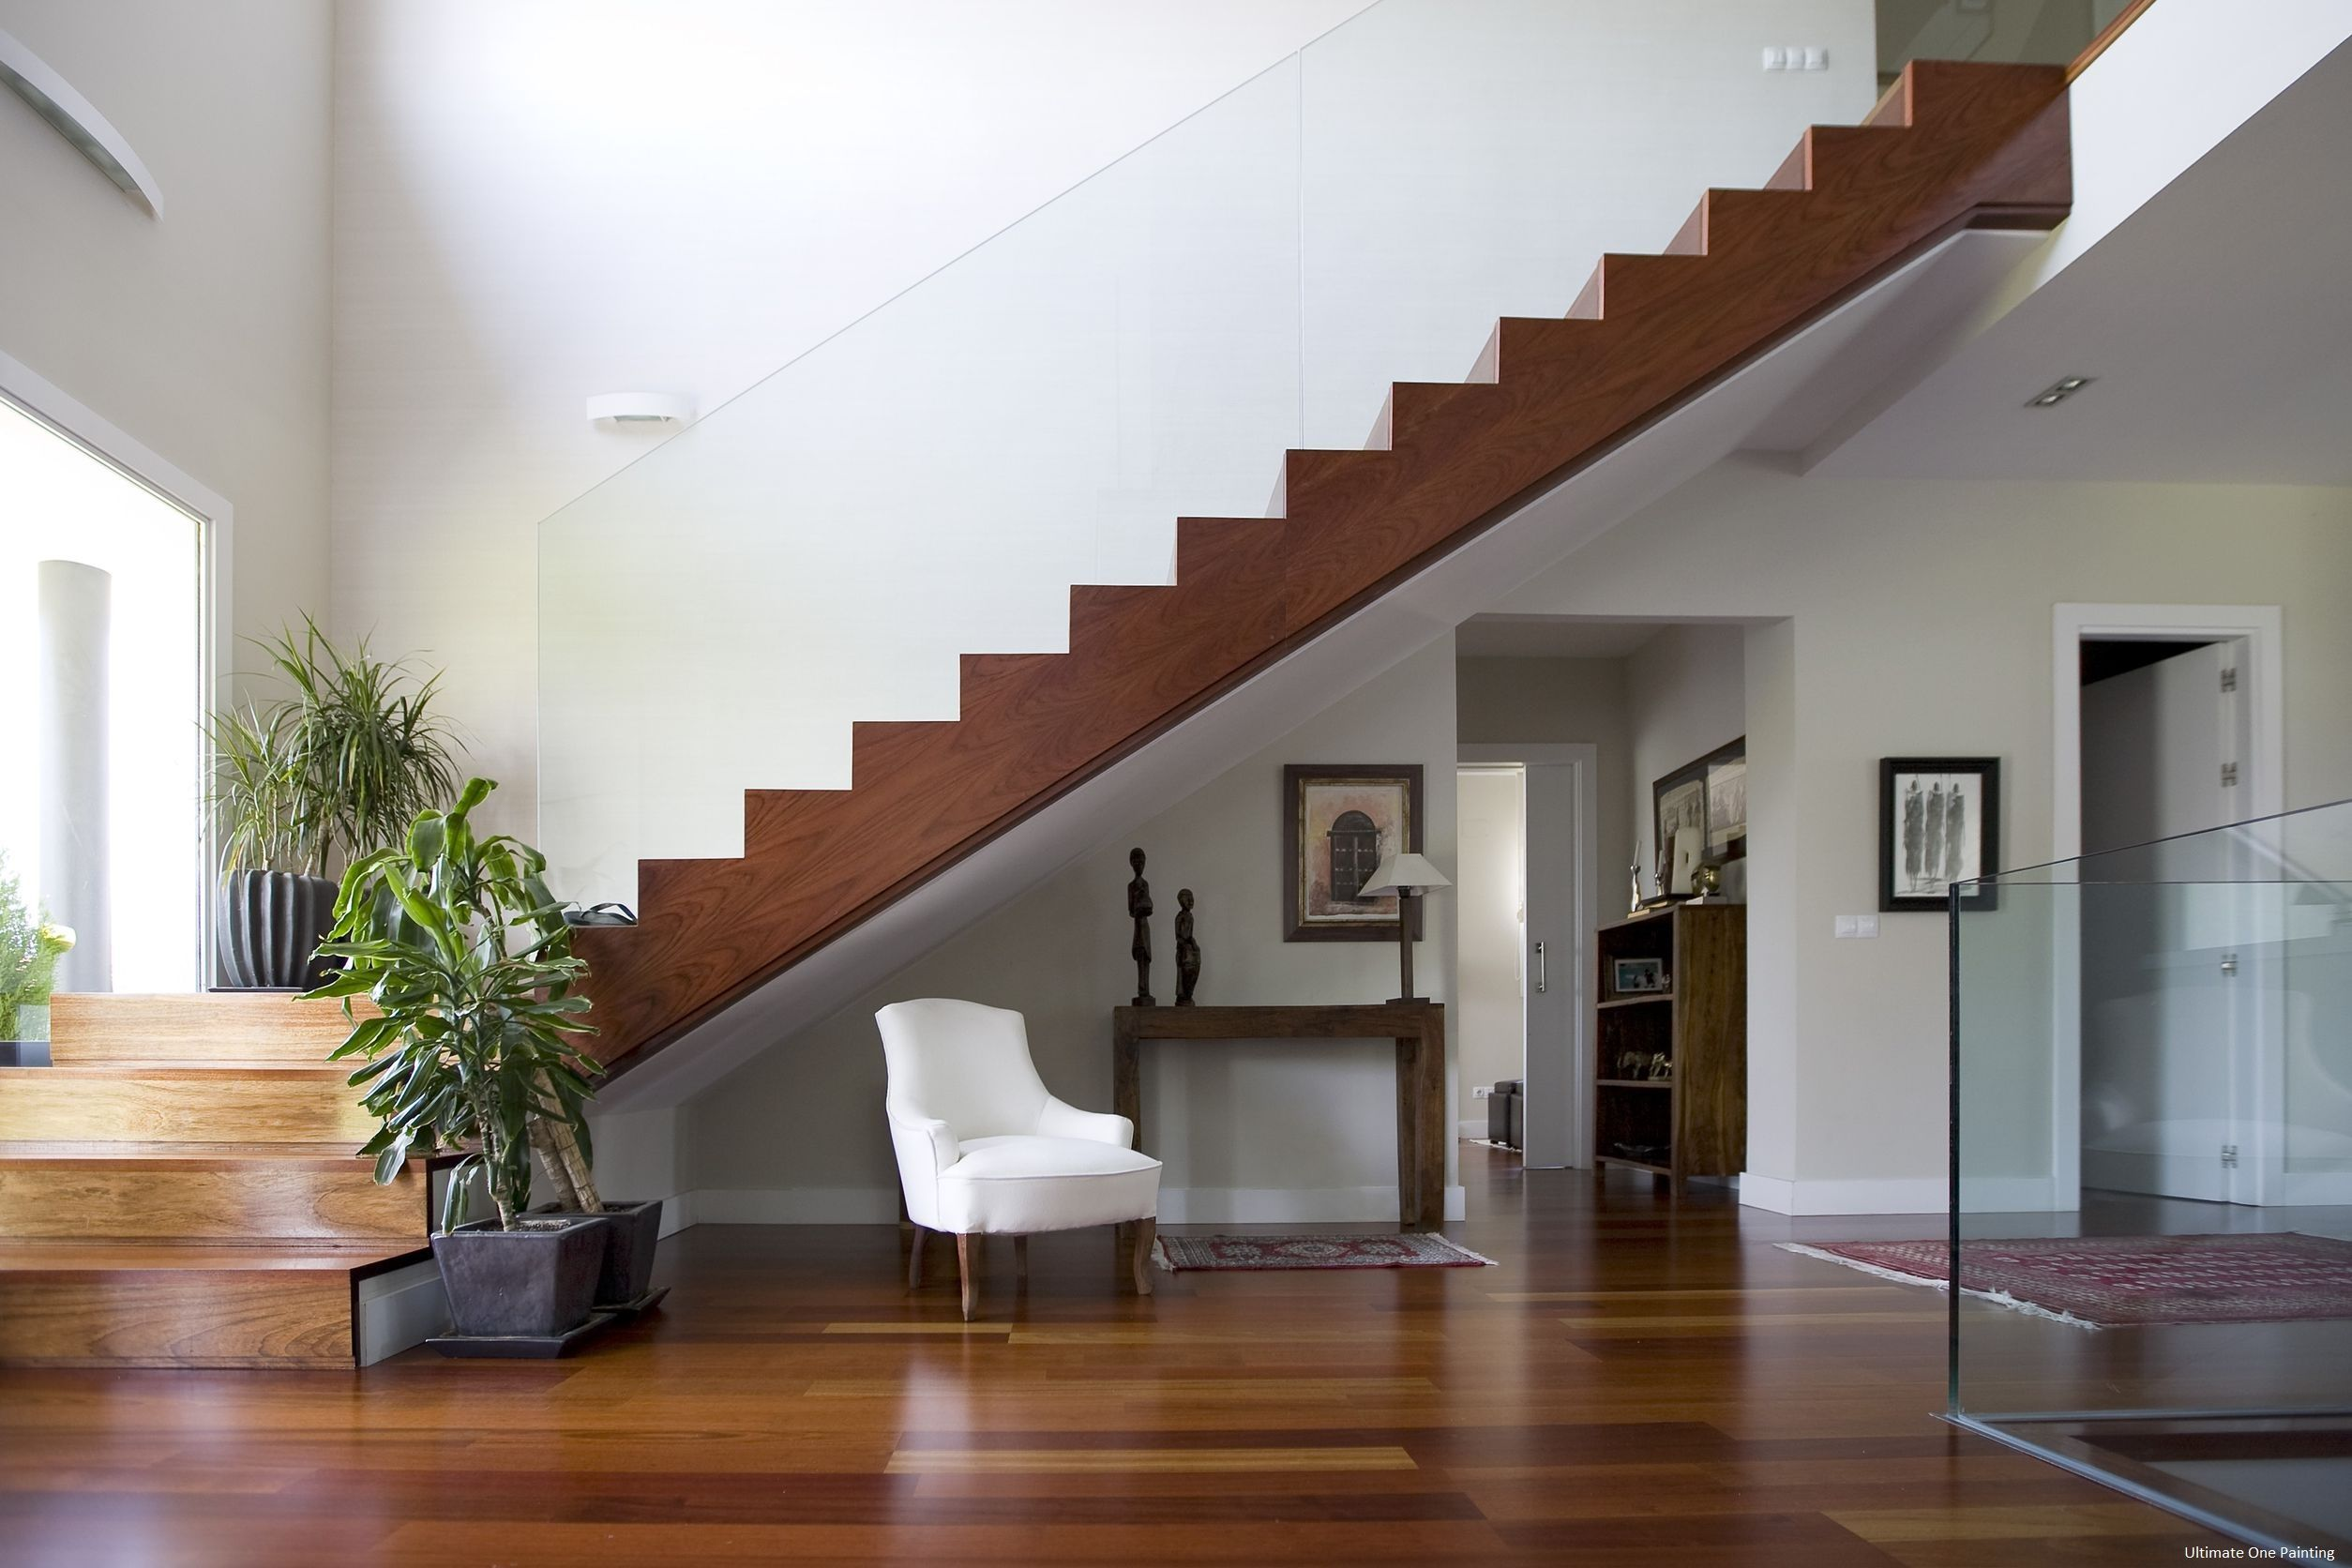 Stair Repair Costs How Much Does It Cost To Fix Stairs In 2020 Glass Railing Home Stairs Repair